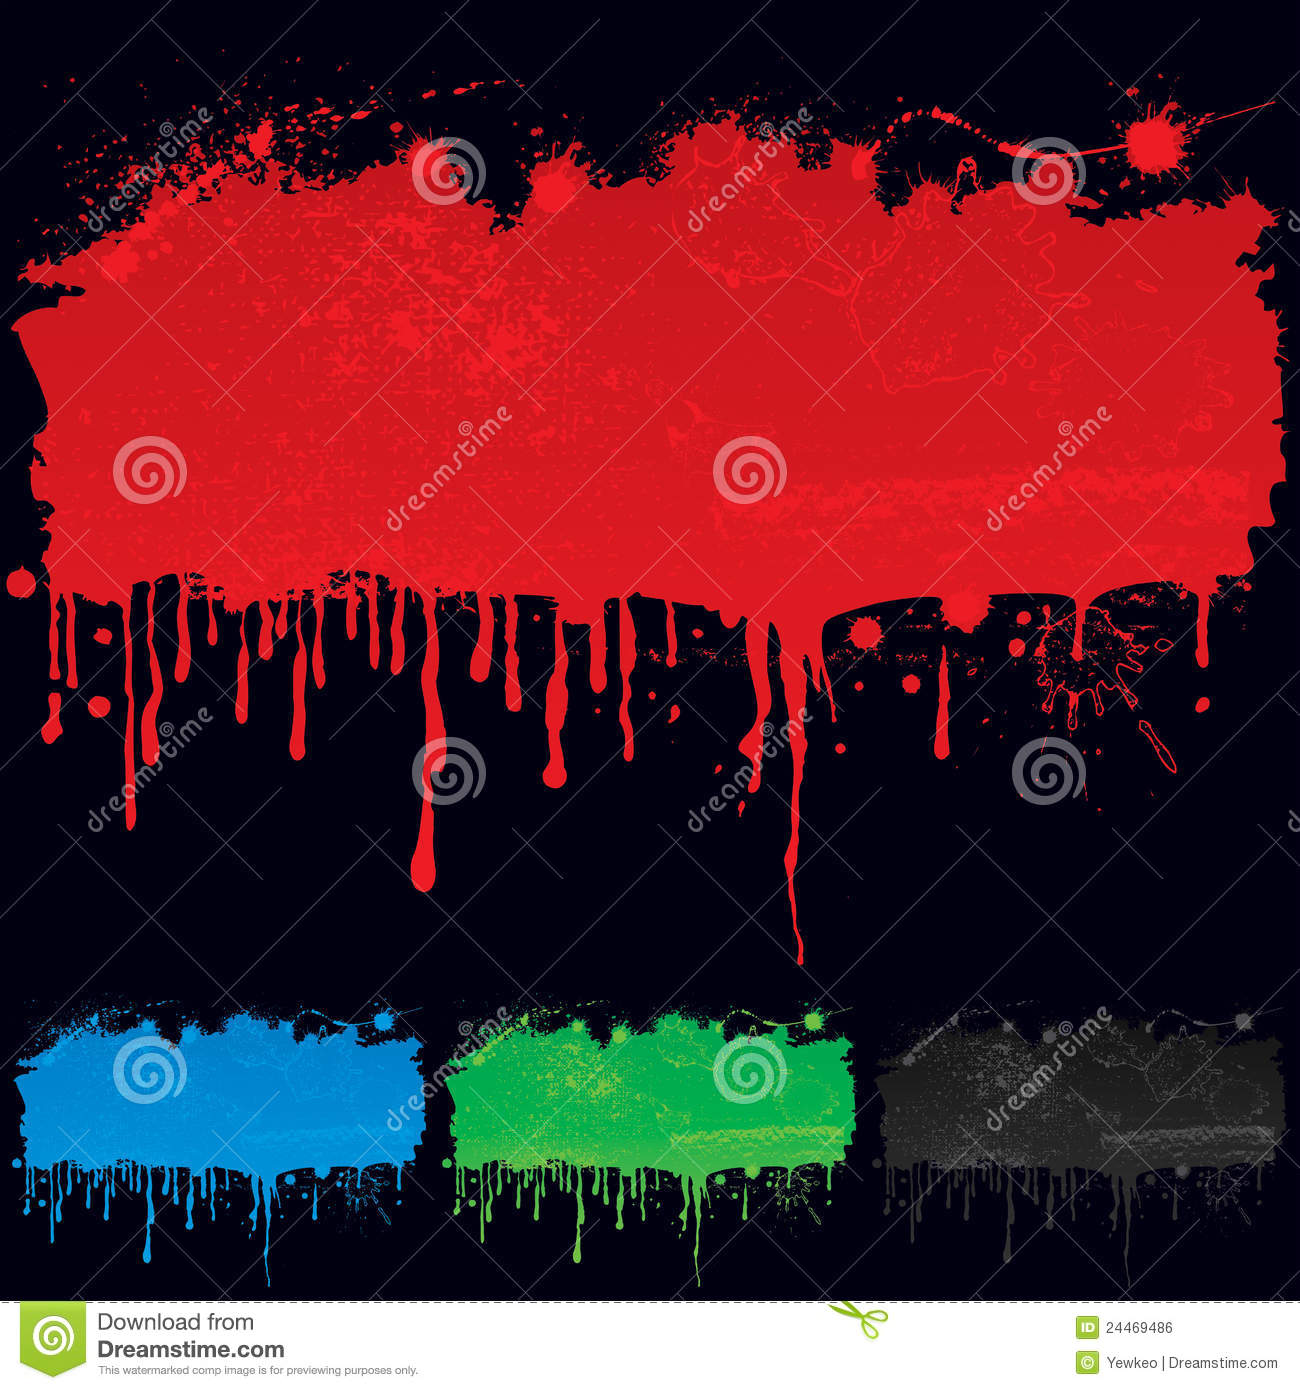 Paint Dripping Royalty Free Stock Image - Image: 24469486